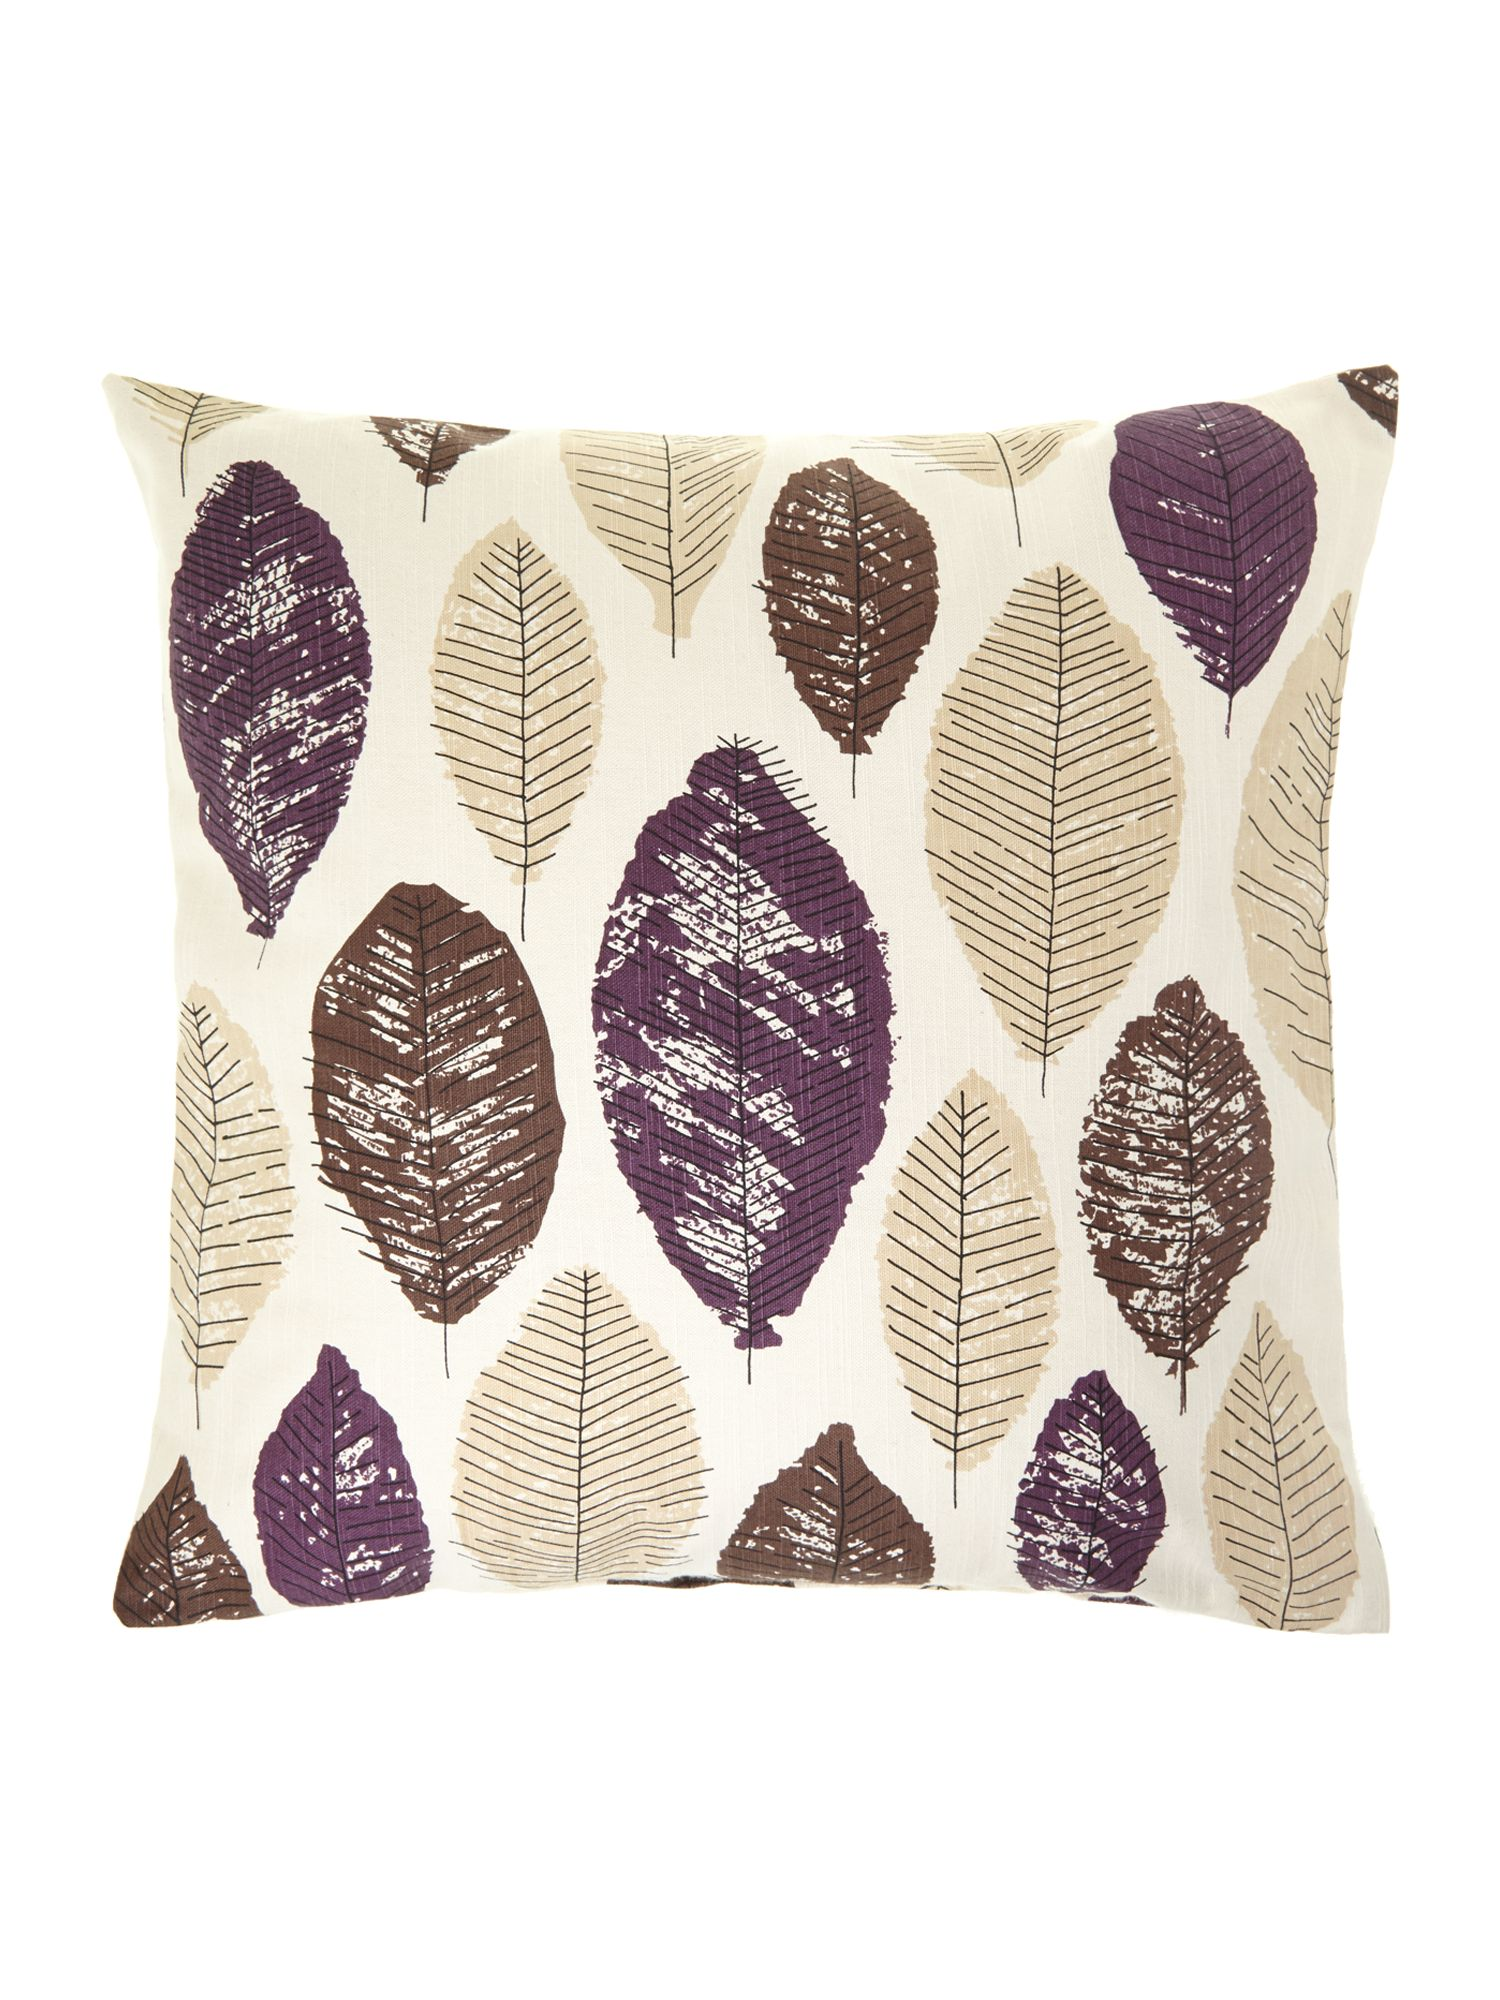 Leaf design cotton cushion, purple